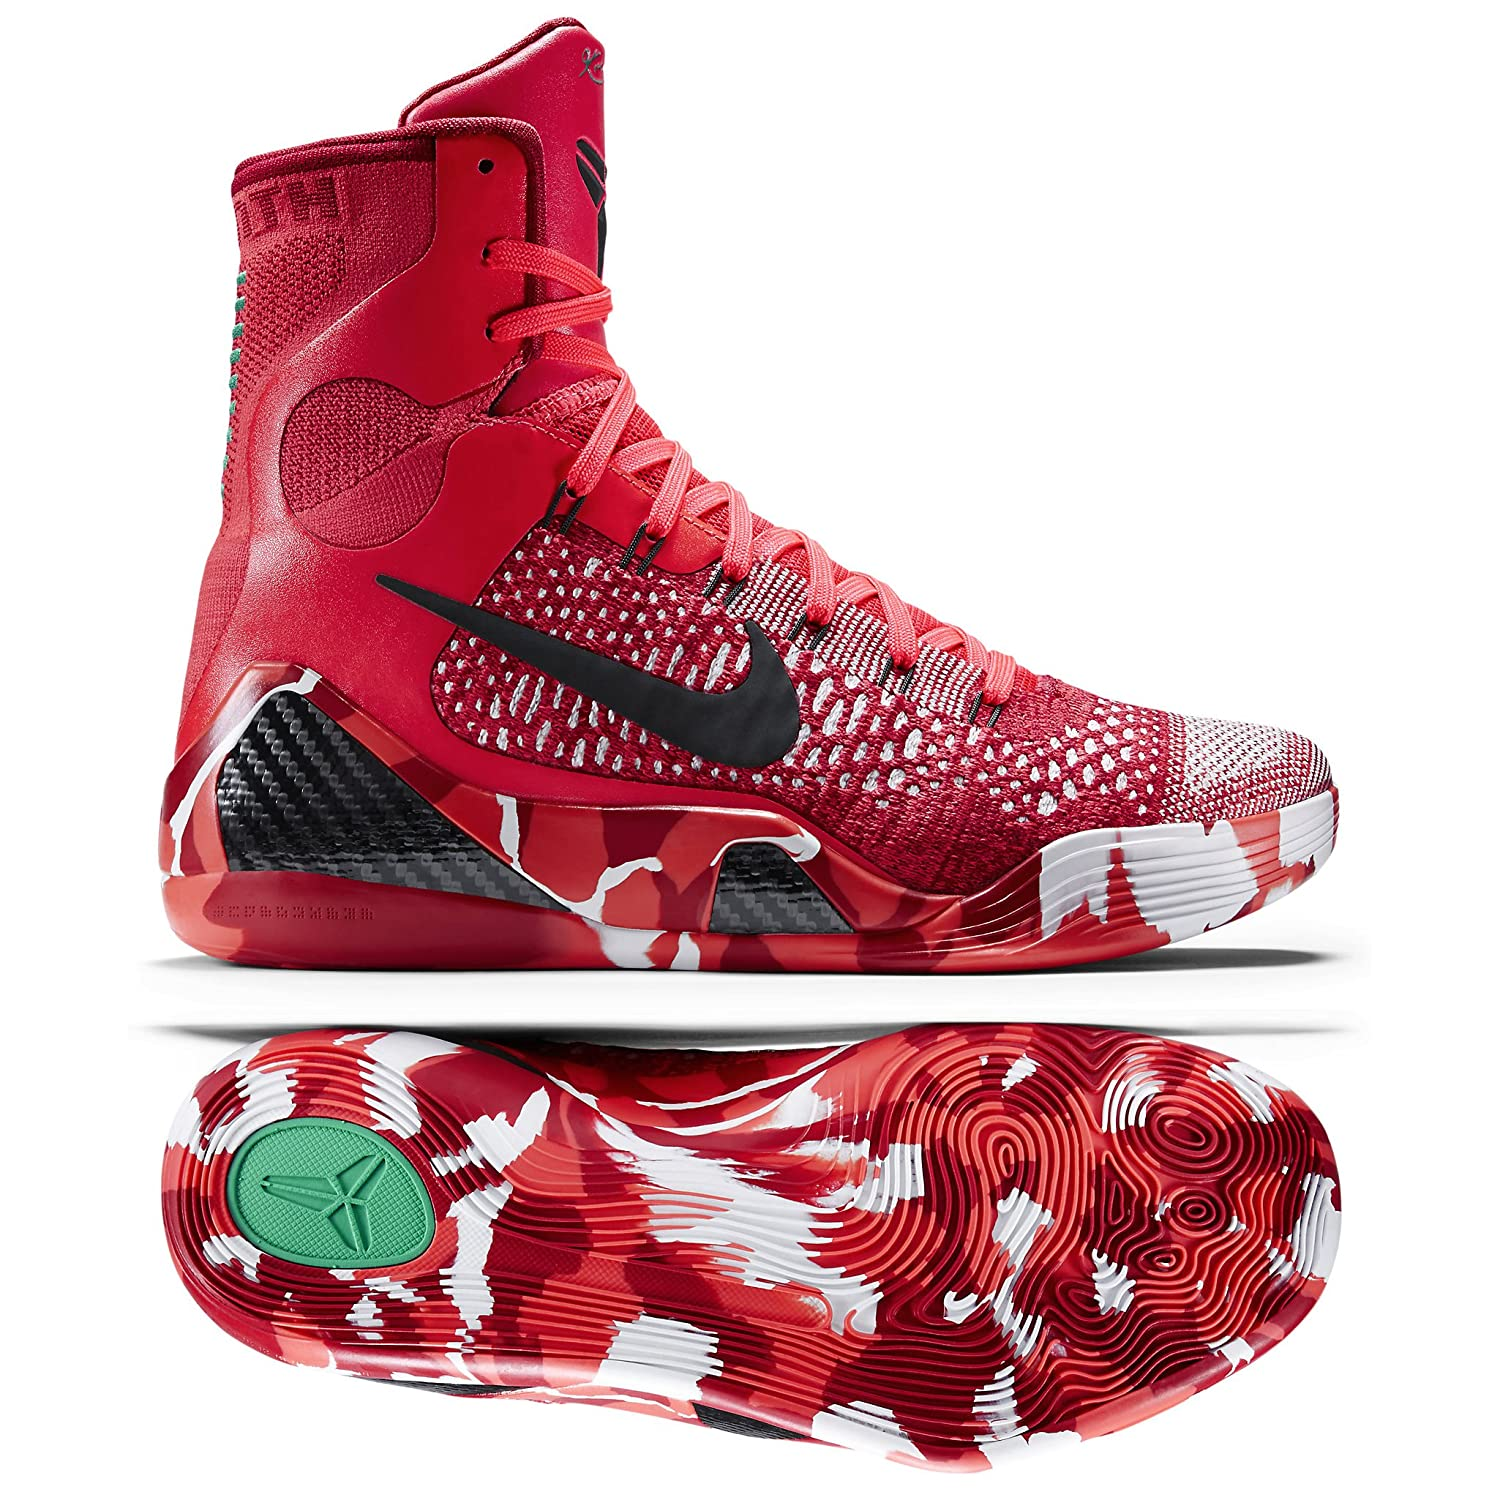 3bd25c9b2c5 Images for Nike Kobe IX 9 Elite Strategy Knit Stocking 630847-600 Crimson  Flyknit Men